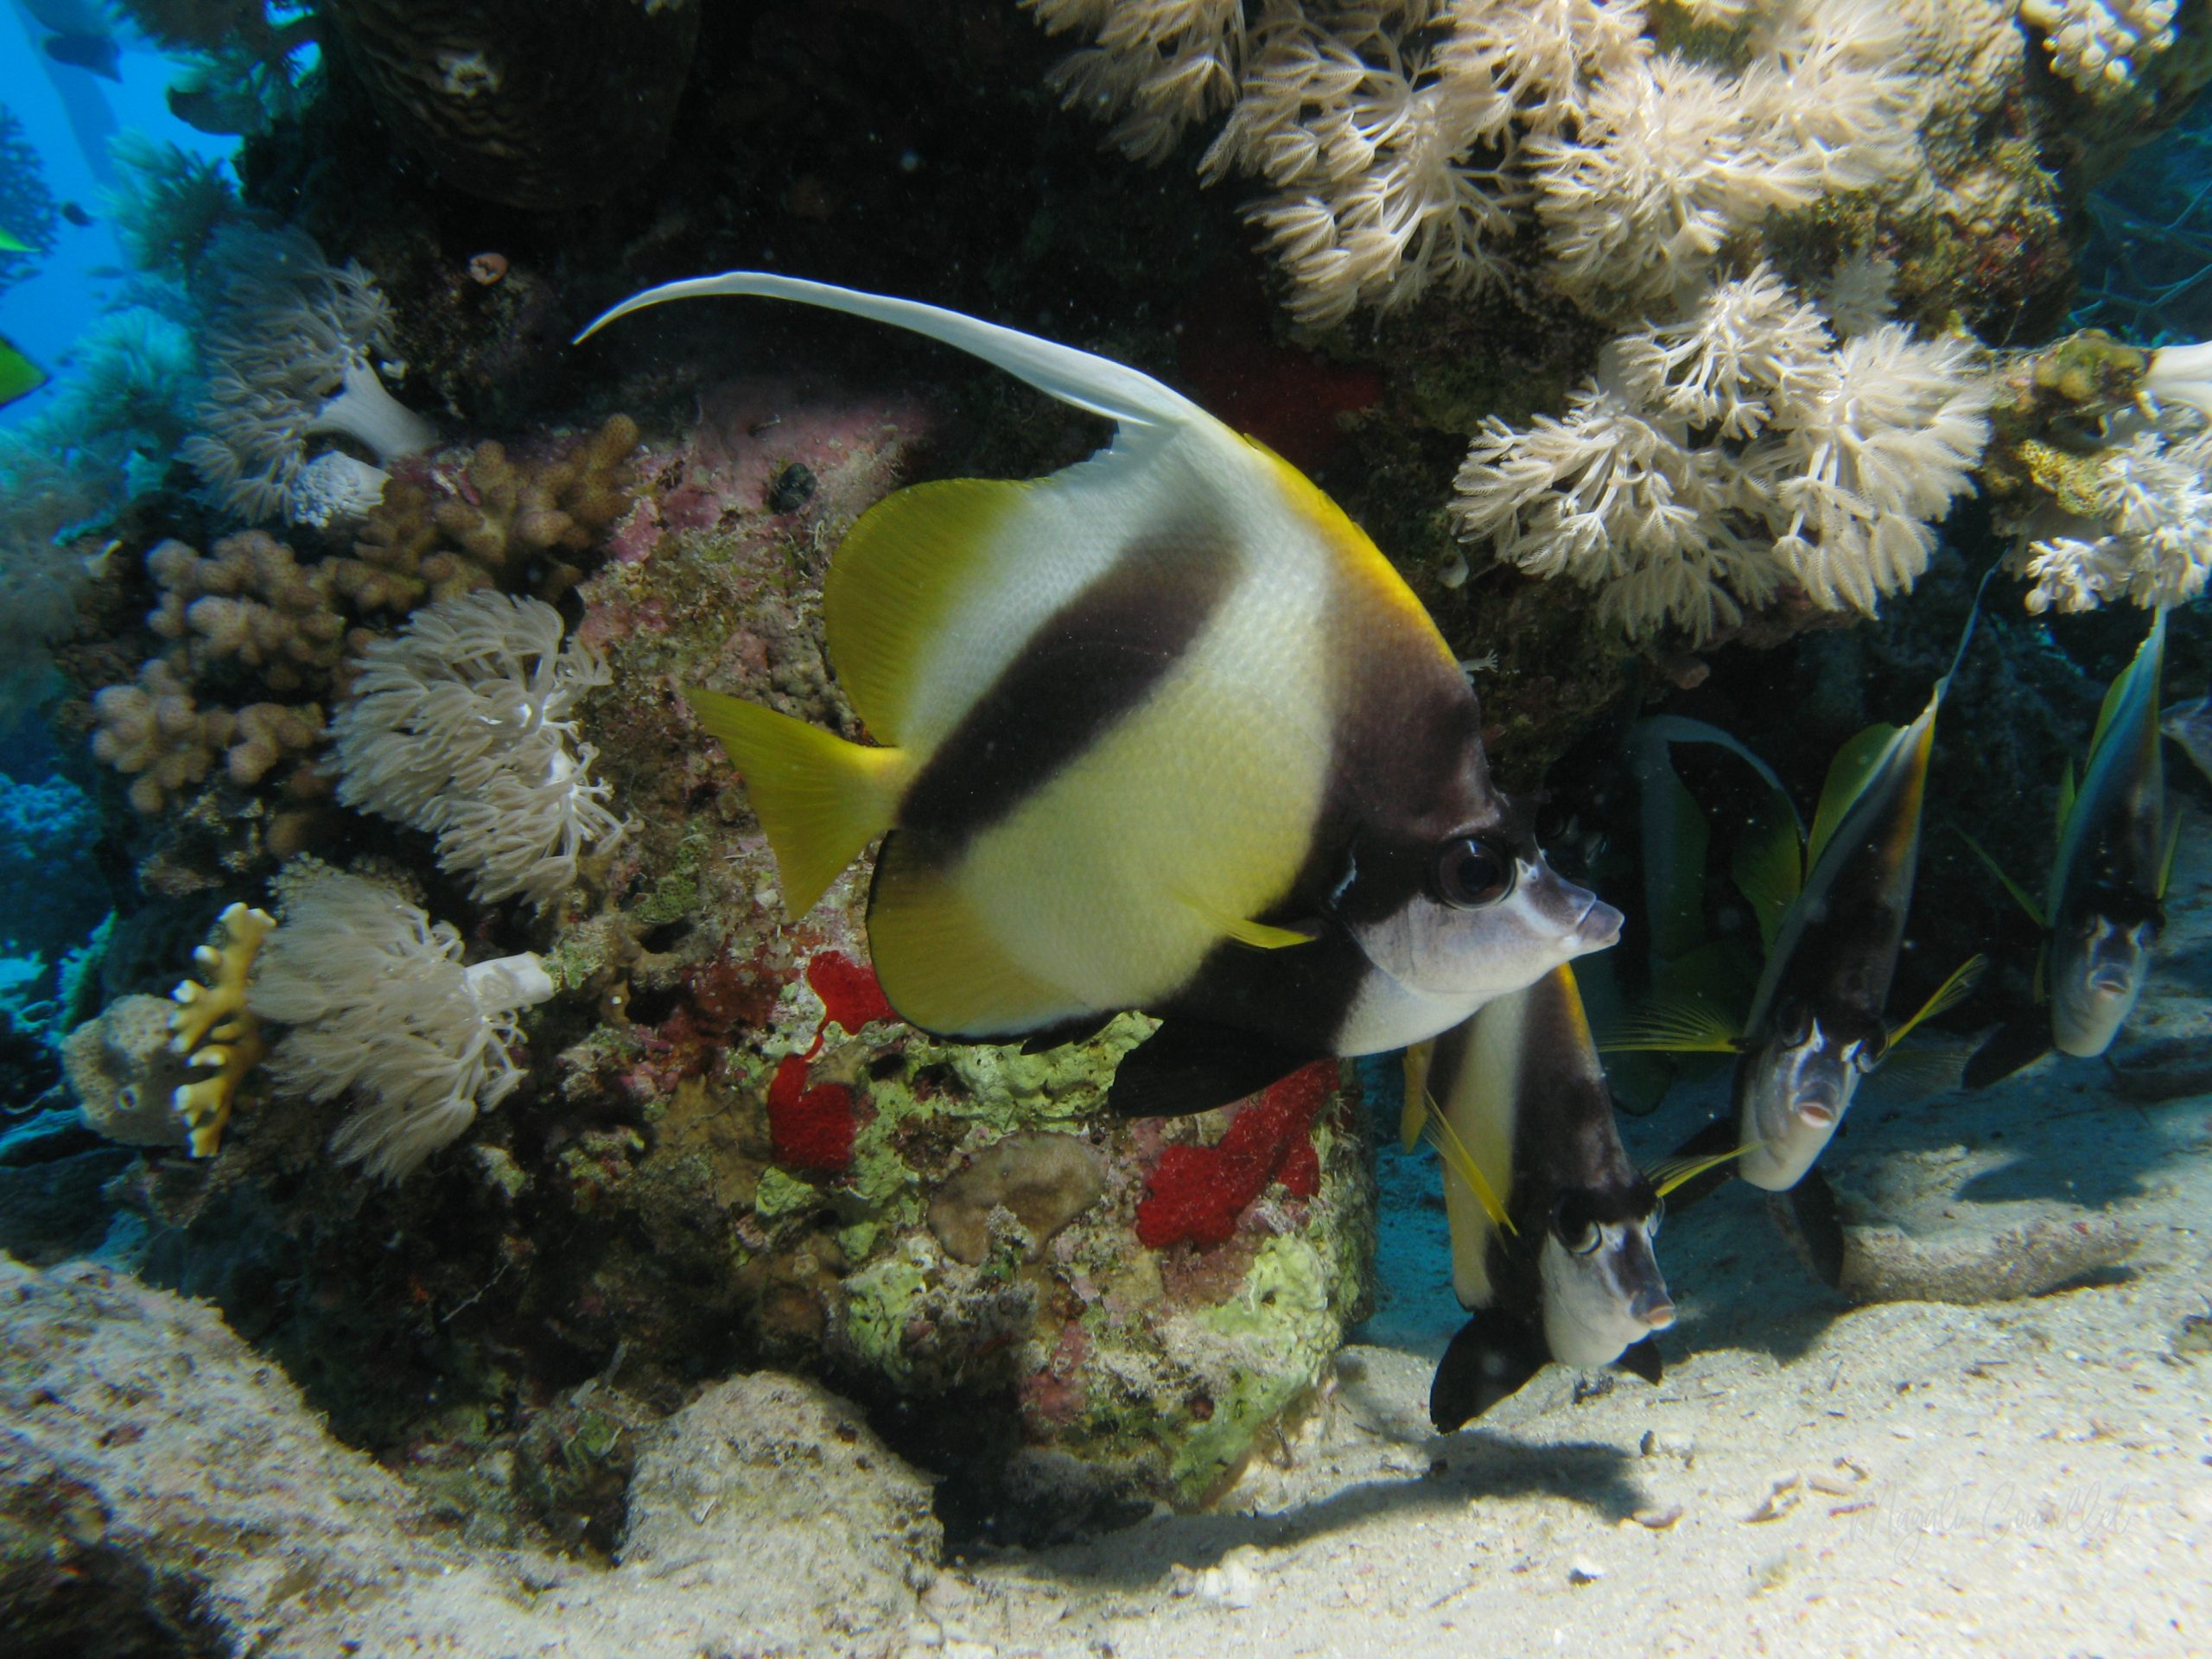 Poissons-cochers - Bannerfish